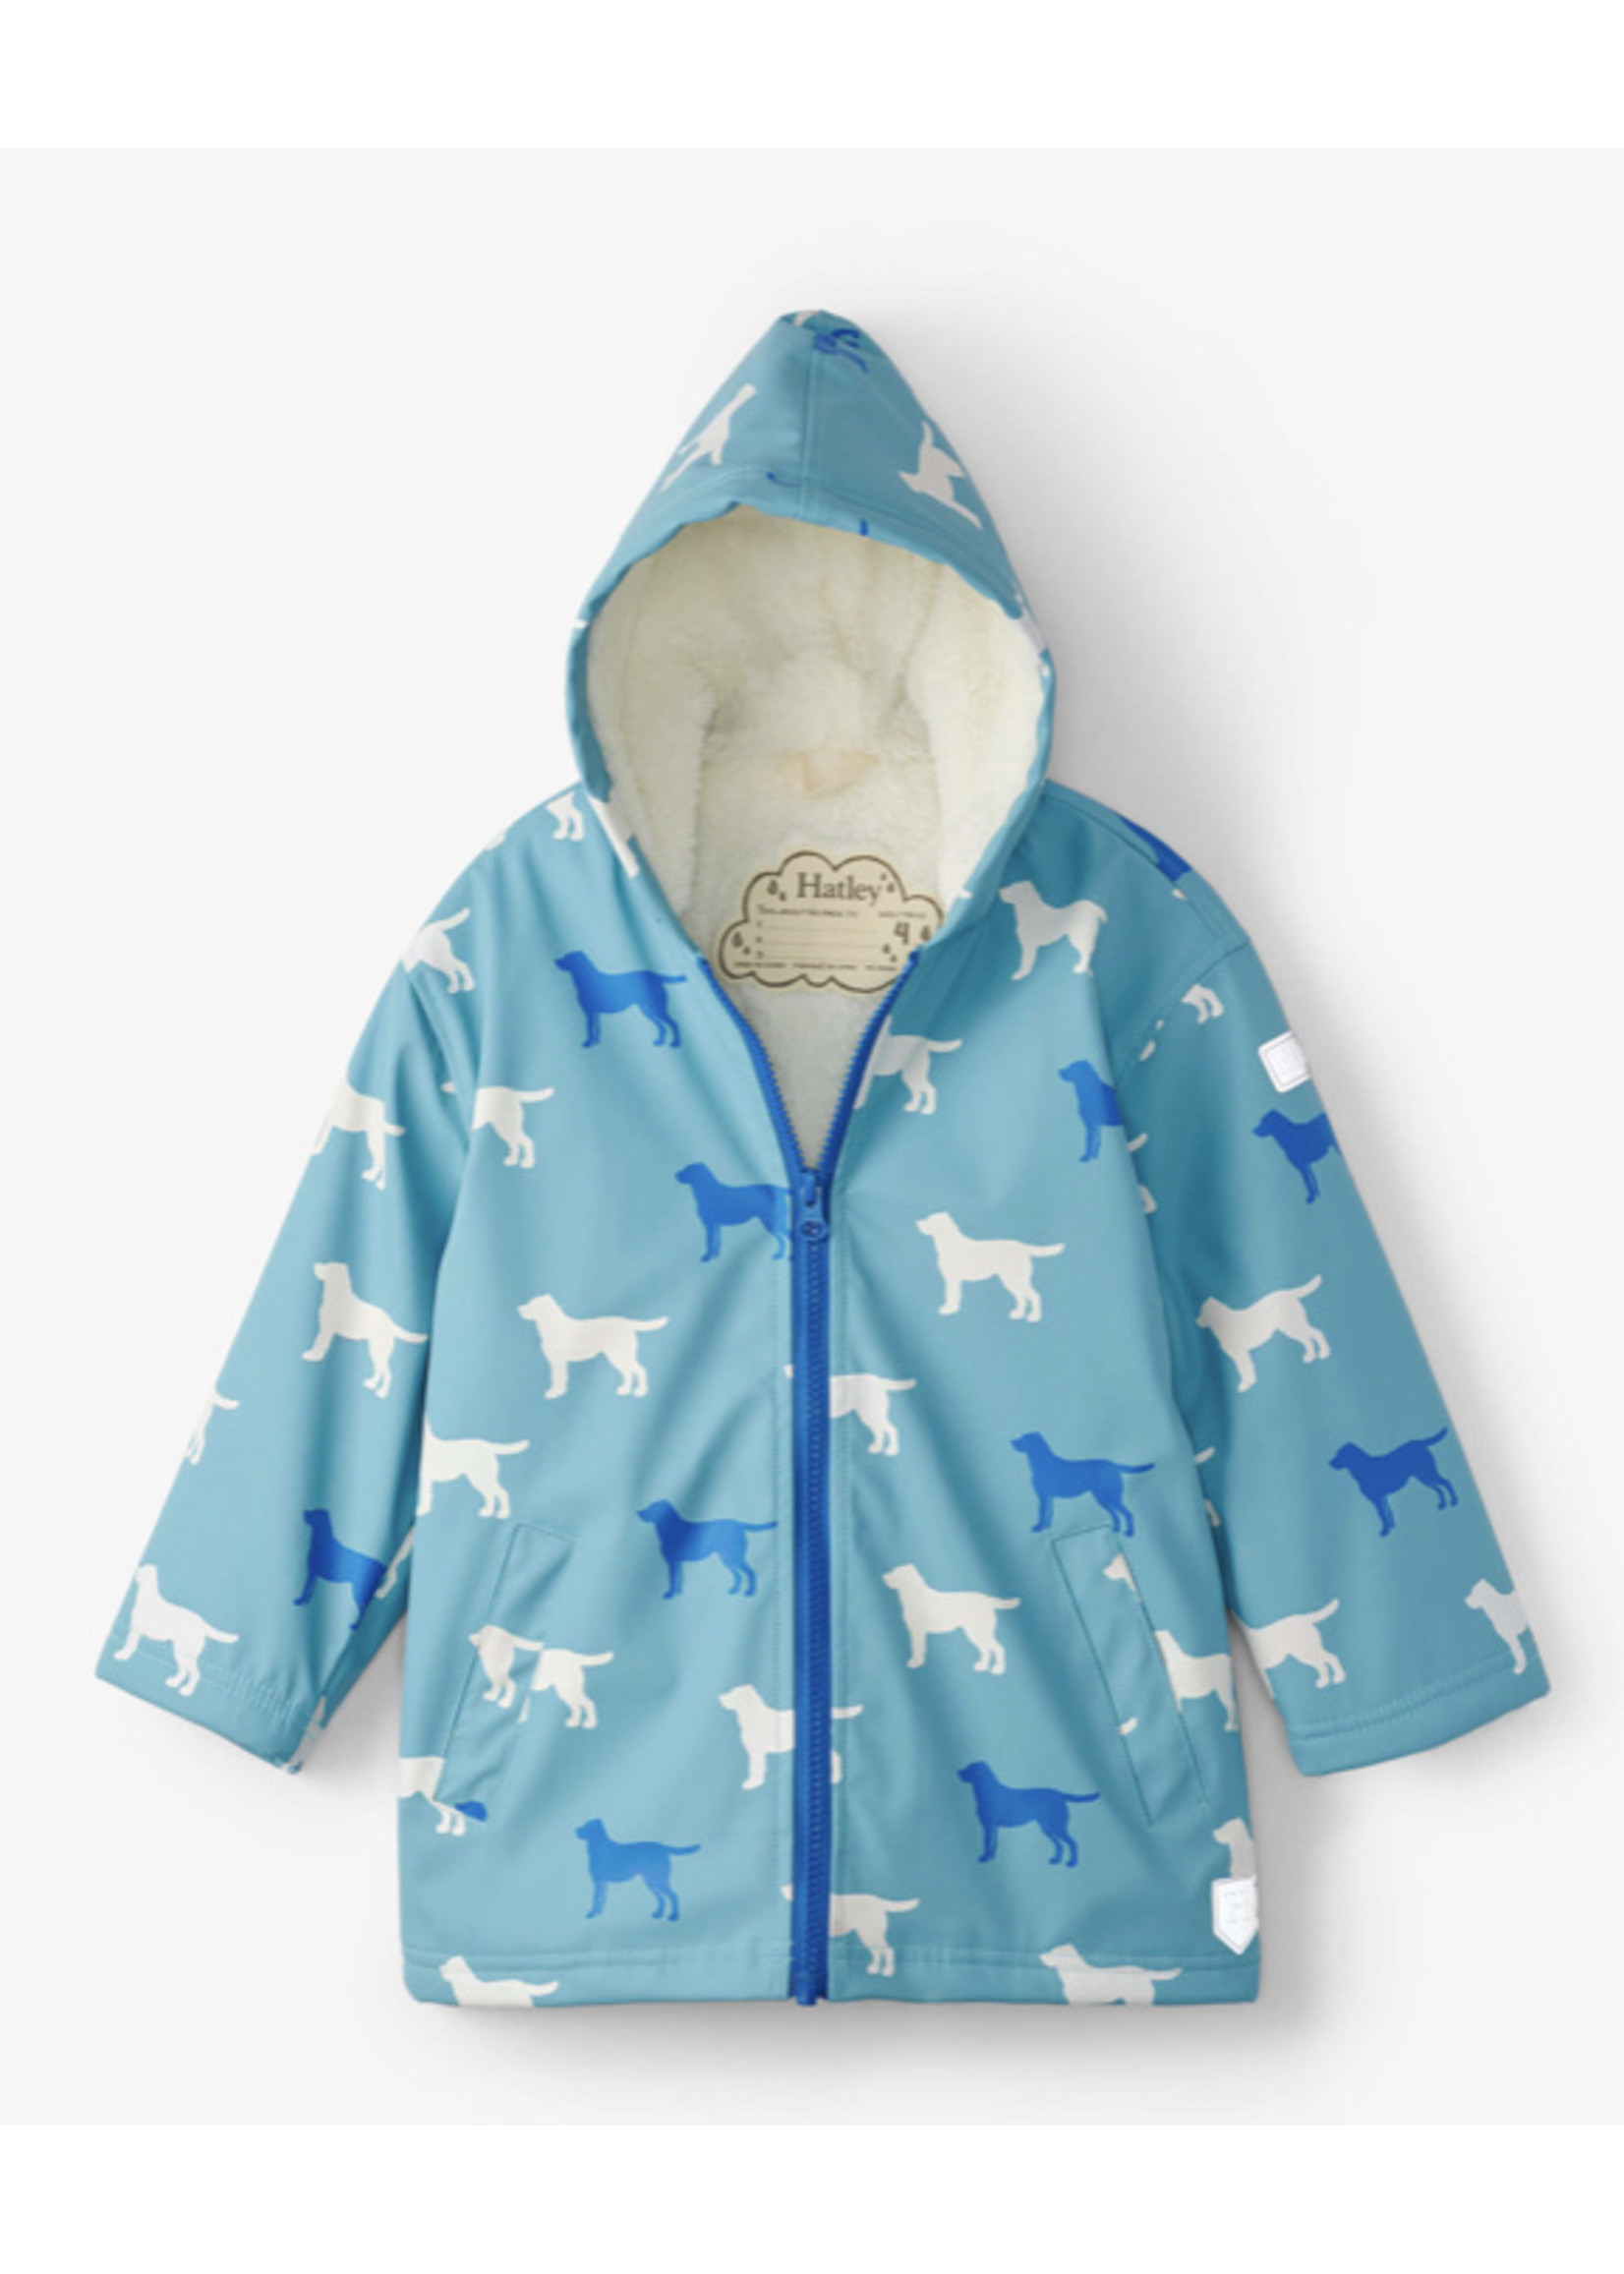 Hatley Friendly Labs Sherpa Lined Color Changing Jacket